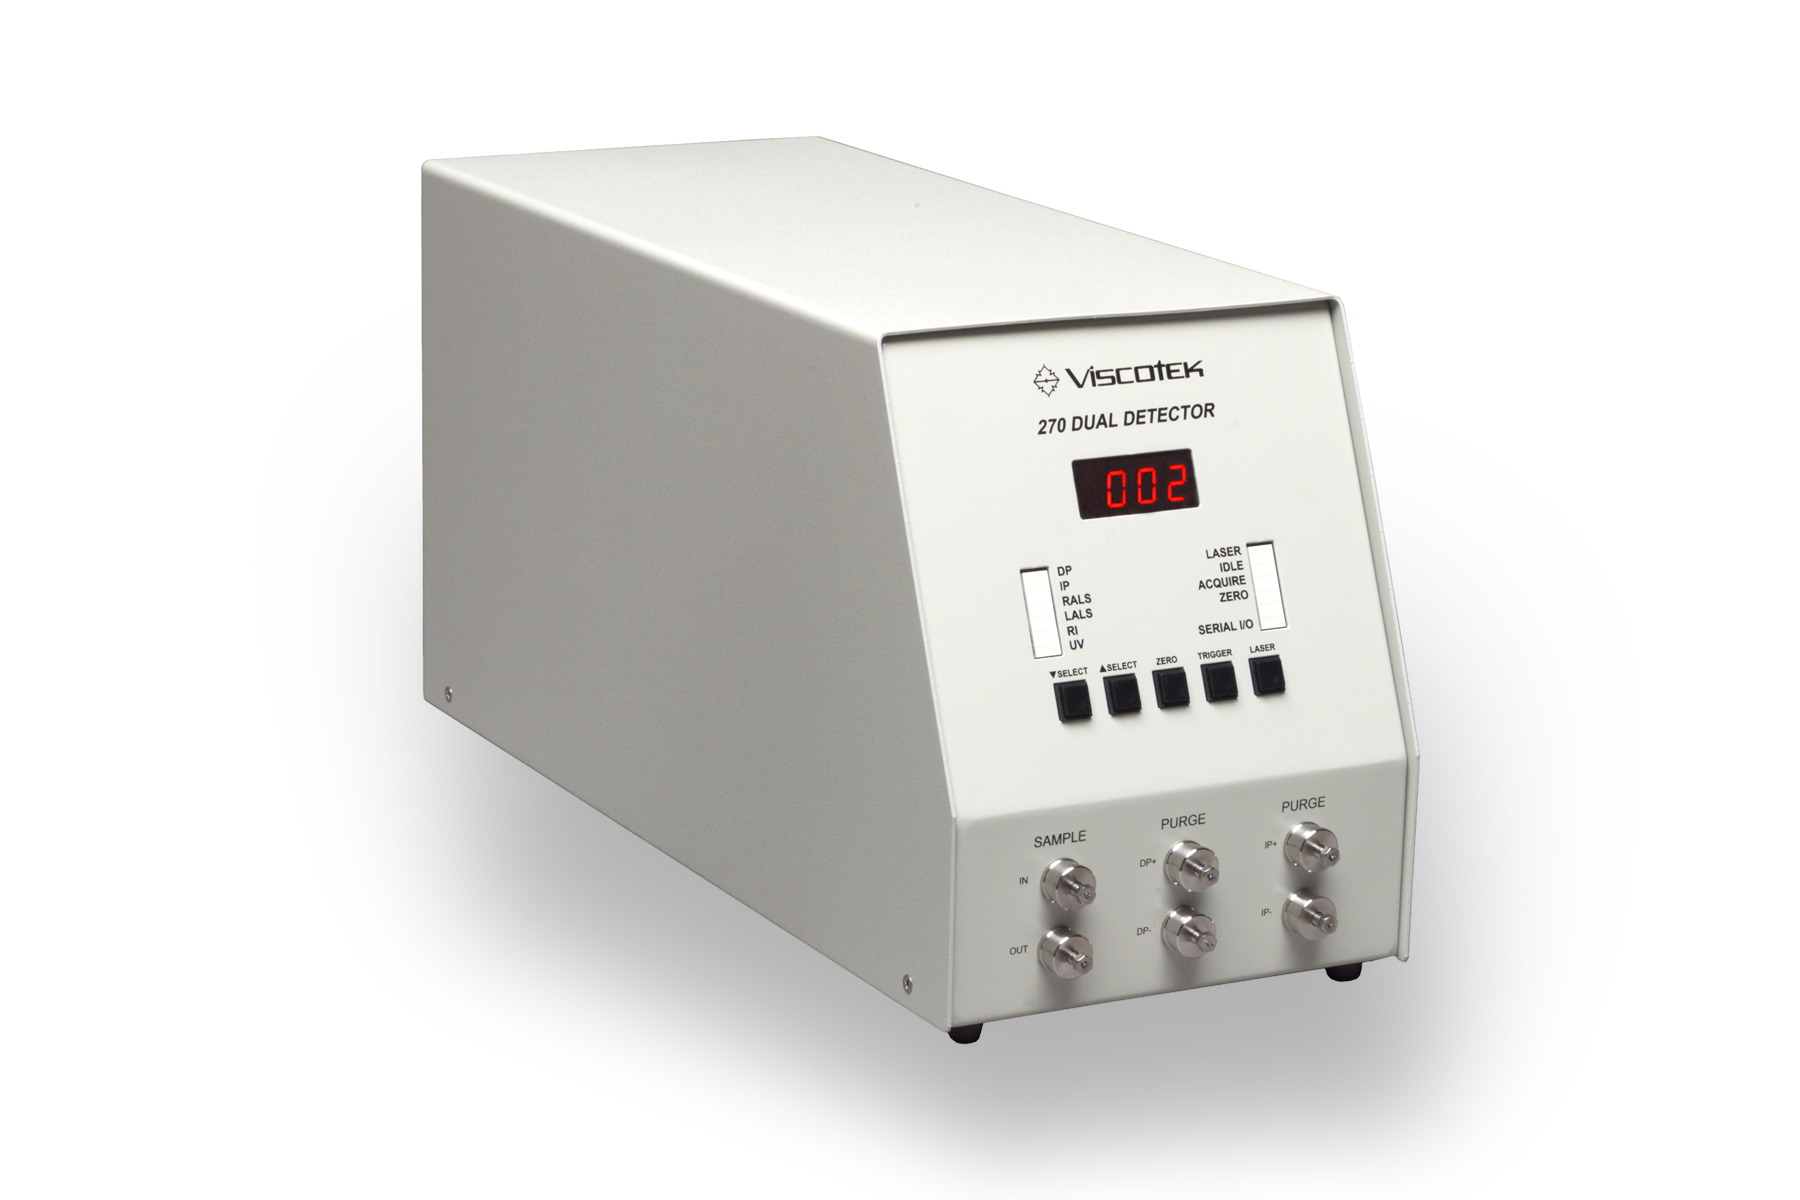 Modular advanced GPC detector for upgrading single-detector systems.